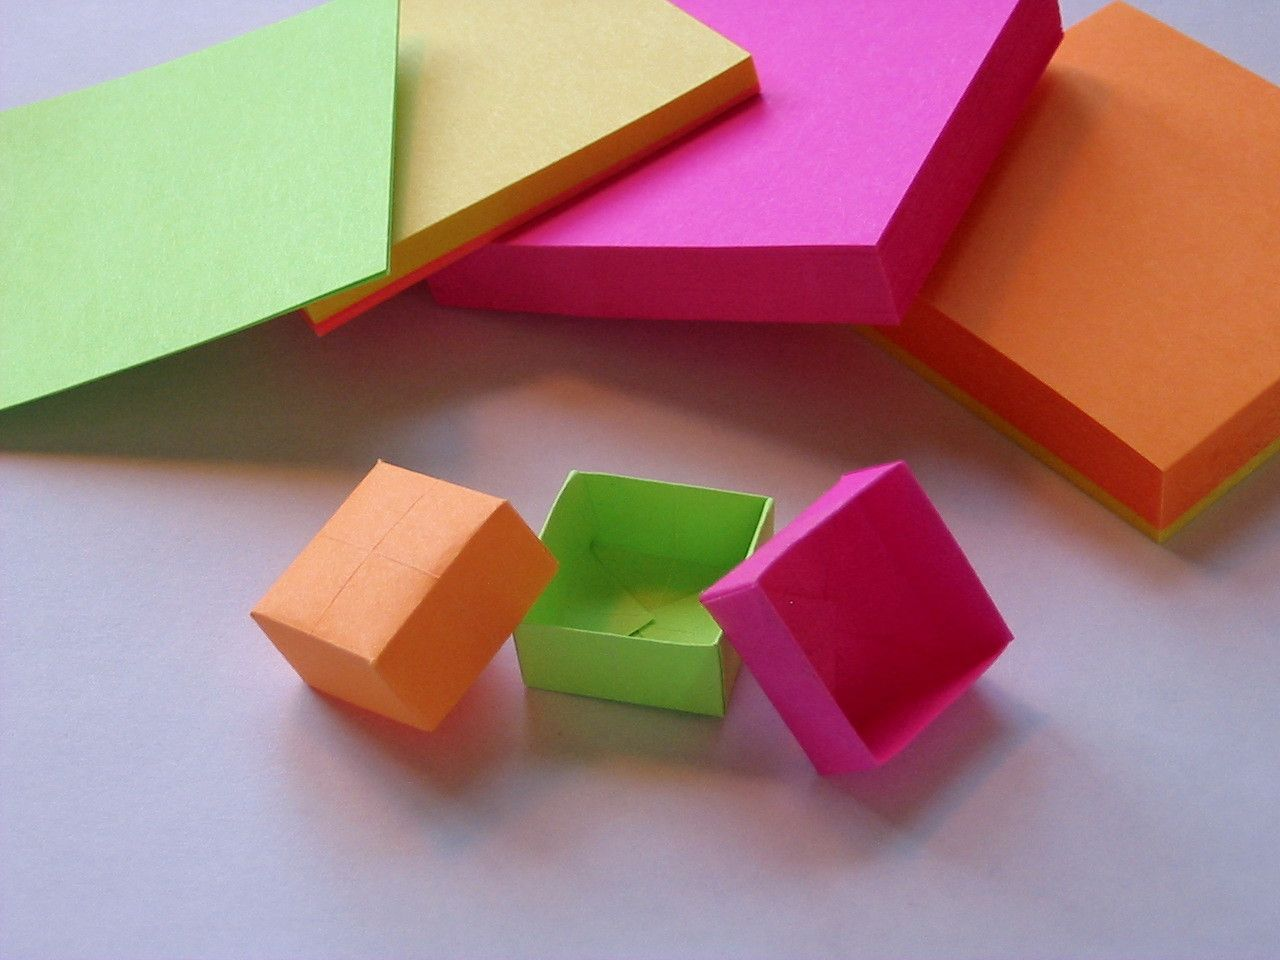 Origami Post-it Box | Sticky notes and Origami - photo#49